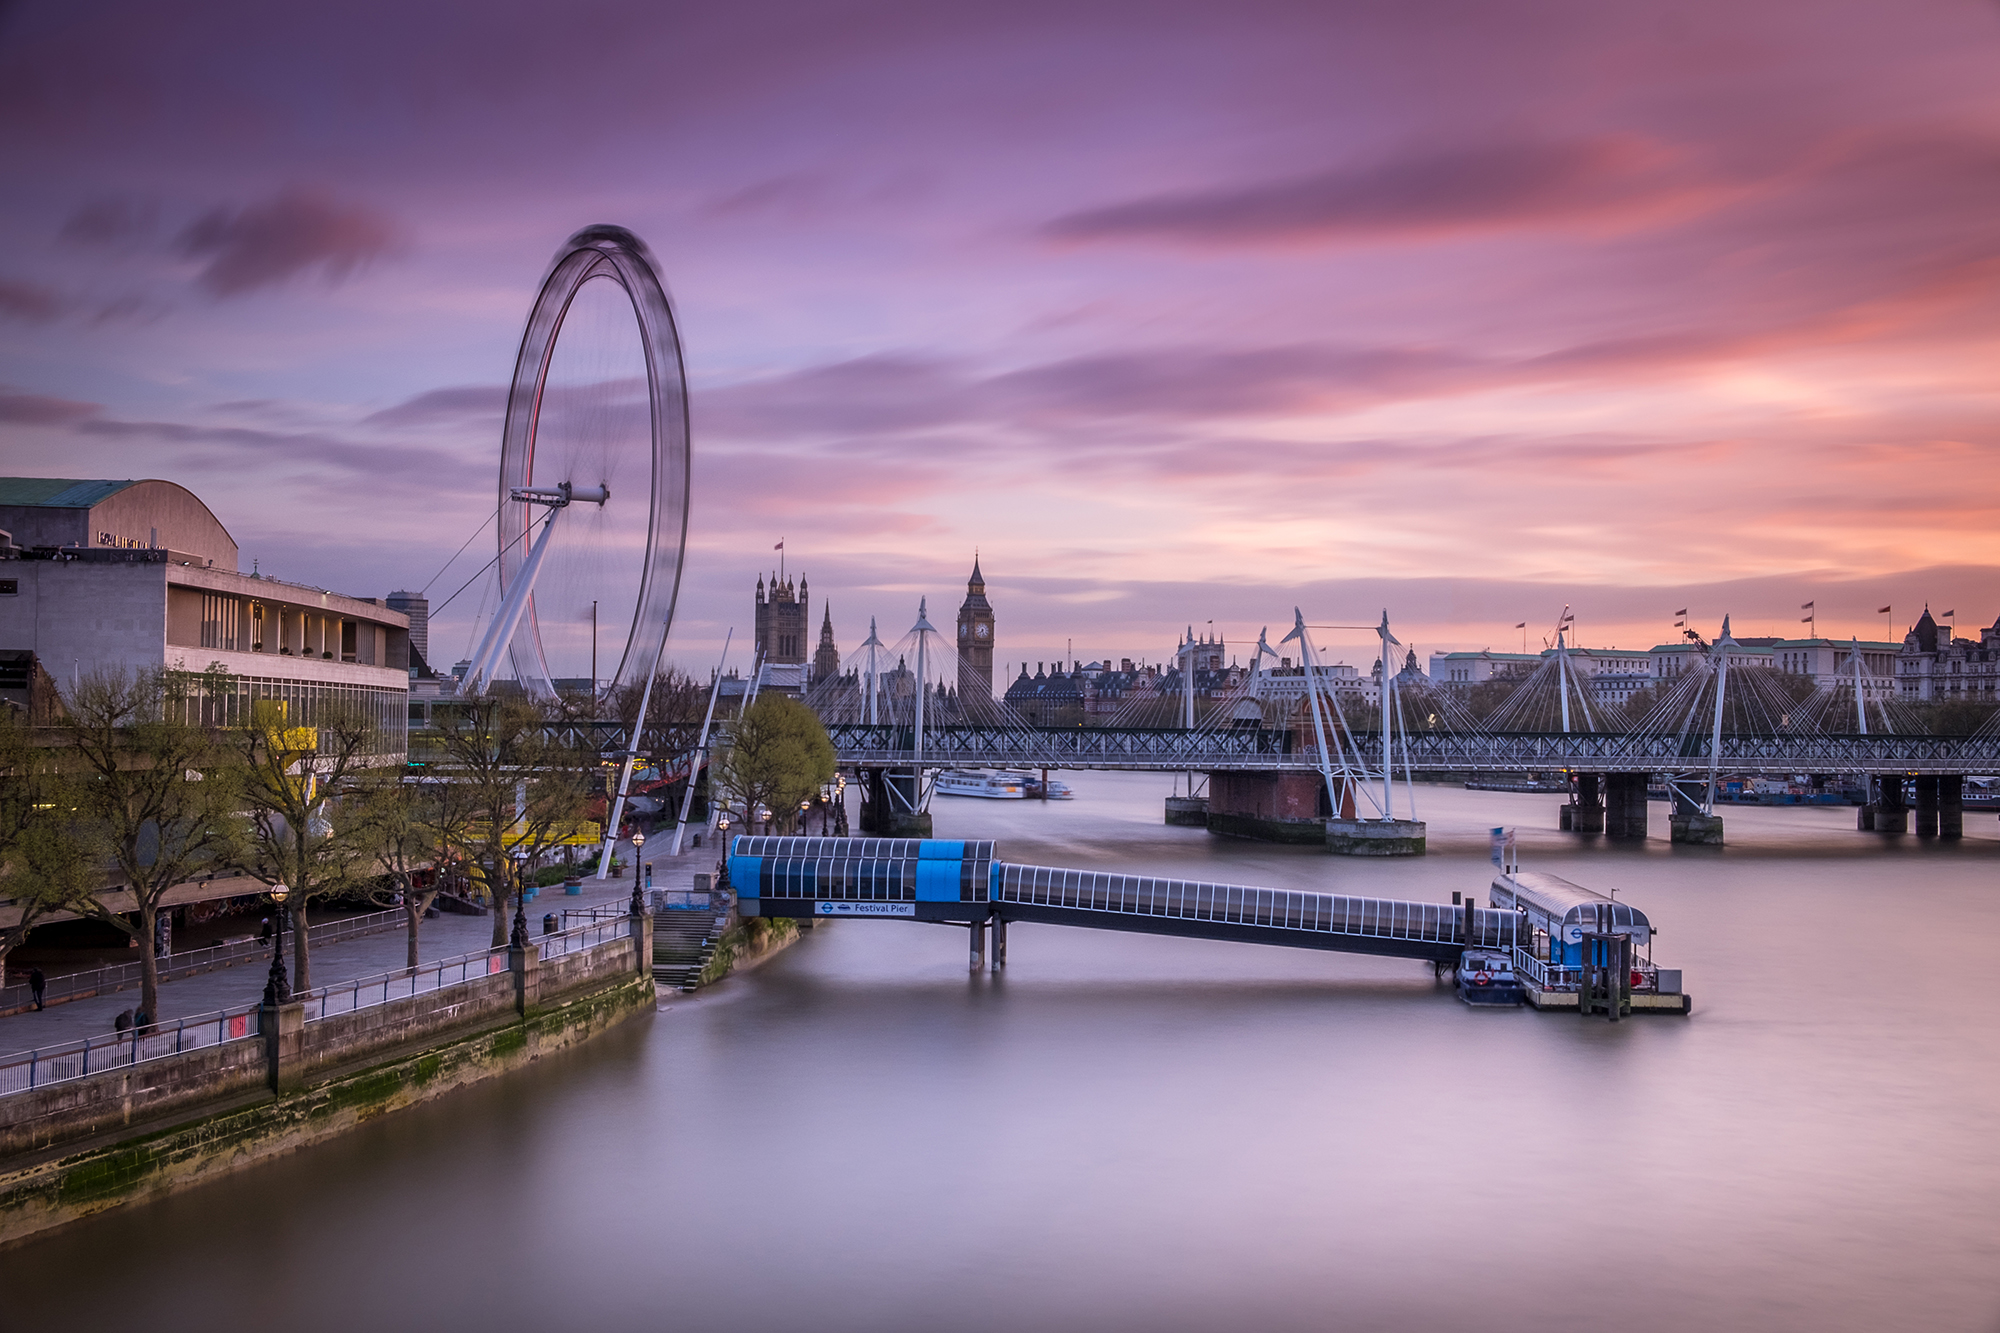 A photo of the South Bank at sunset in London taken by Trevor Sherwin